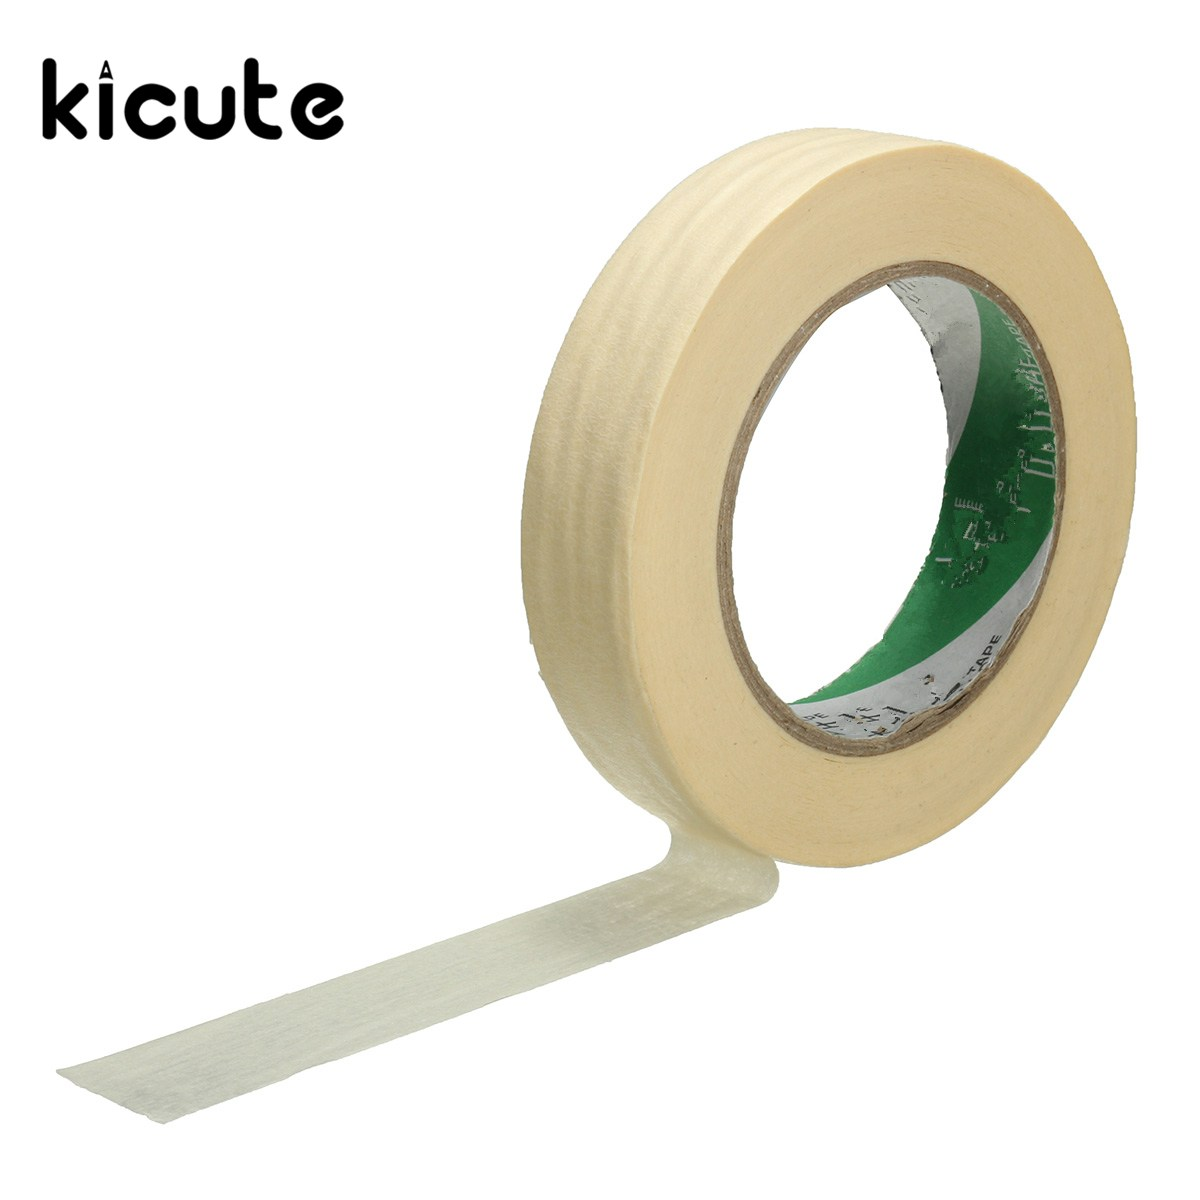 Kicute Hot Sale 25mm*50m Roll Beige Masking Tape Printing Printer Decorative Adhesive Sticker For Home Office Art Tools 9 2016 new 3d color printer dual kit for sale 3dprinter electronics with one roll filament masking tape 2gb sd card for free